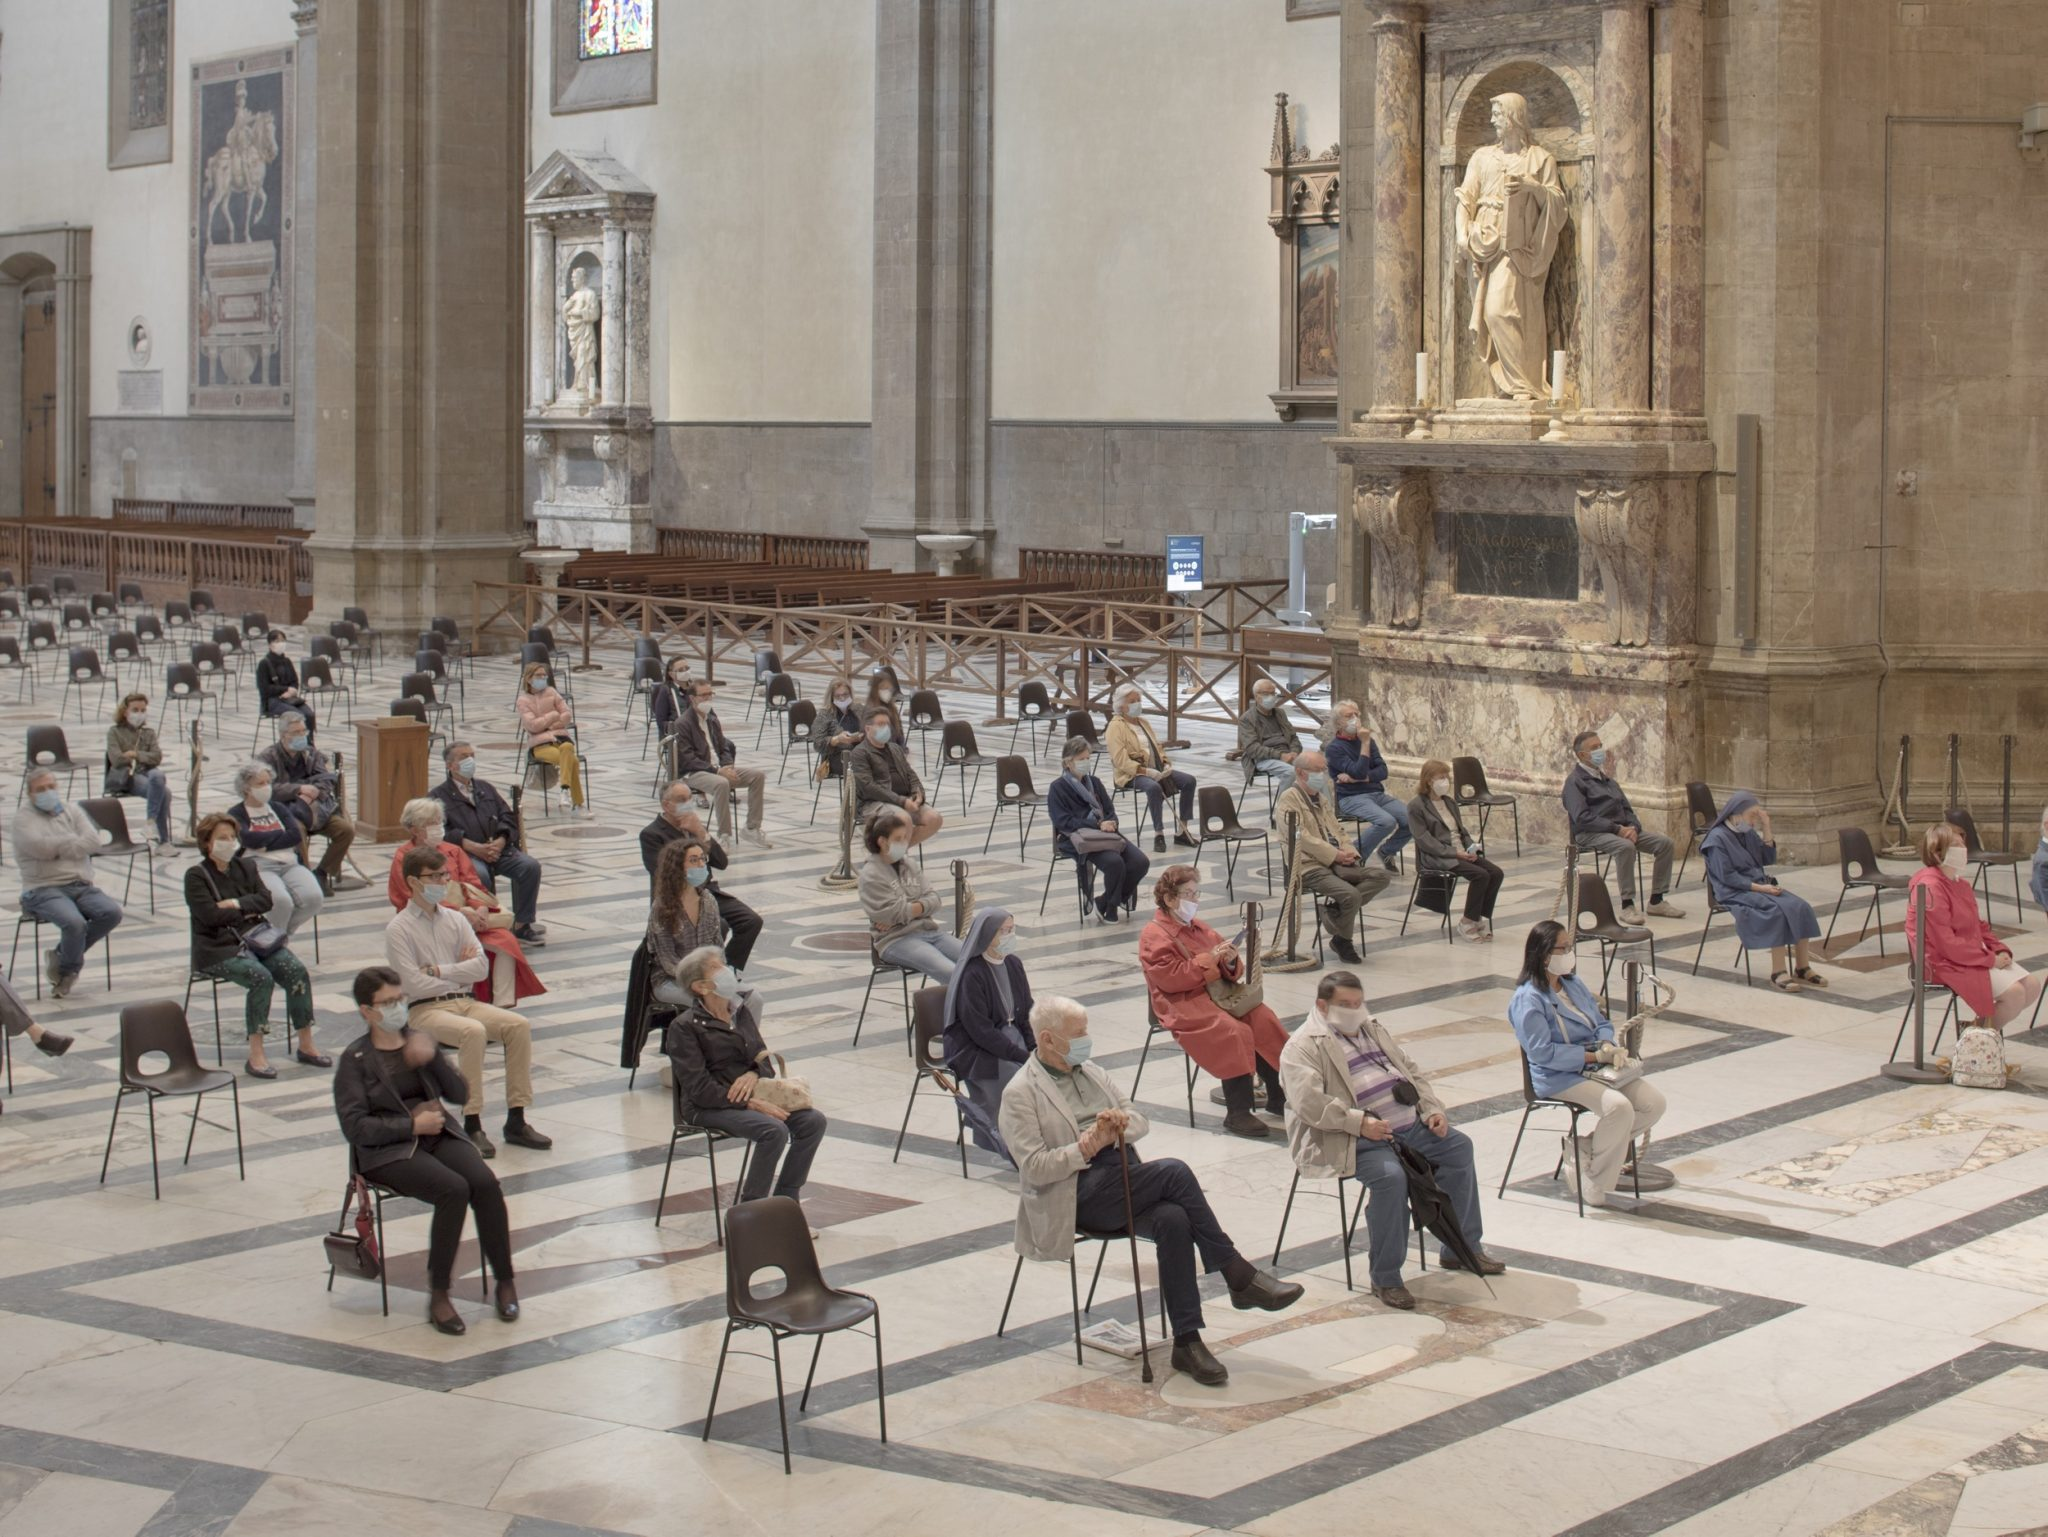 Mass in the Cathedral of Santa Maria del Fiore, Florence, Italy, 2020